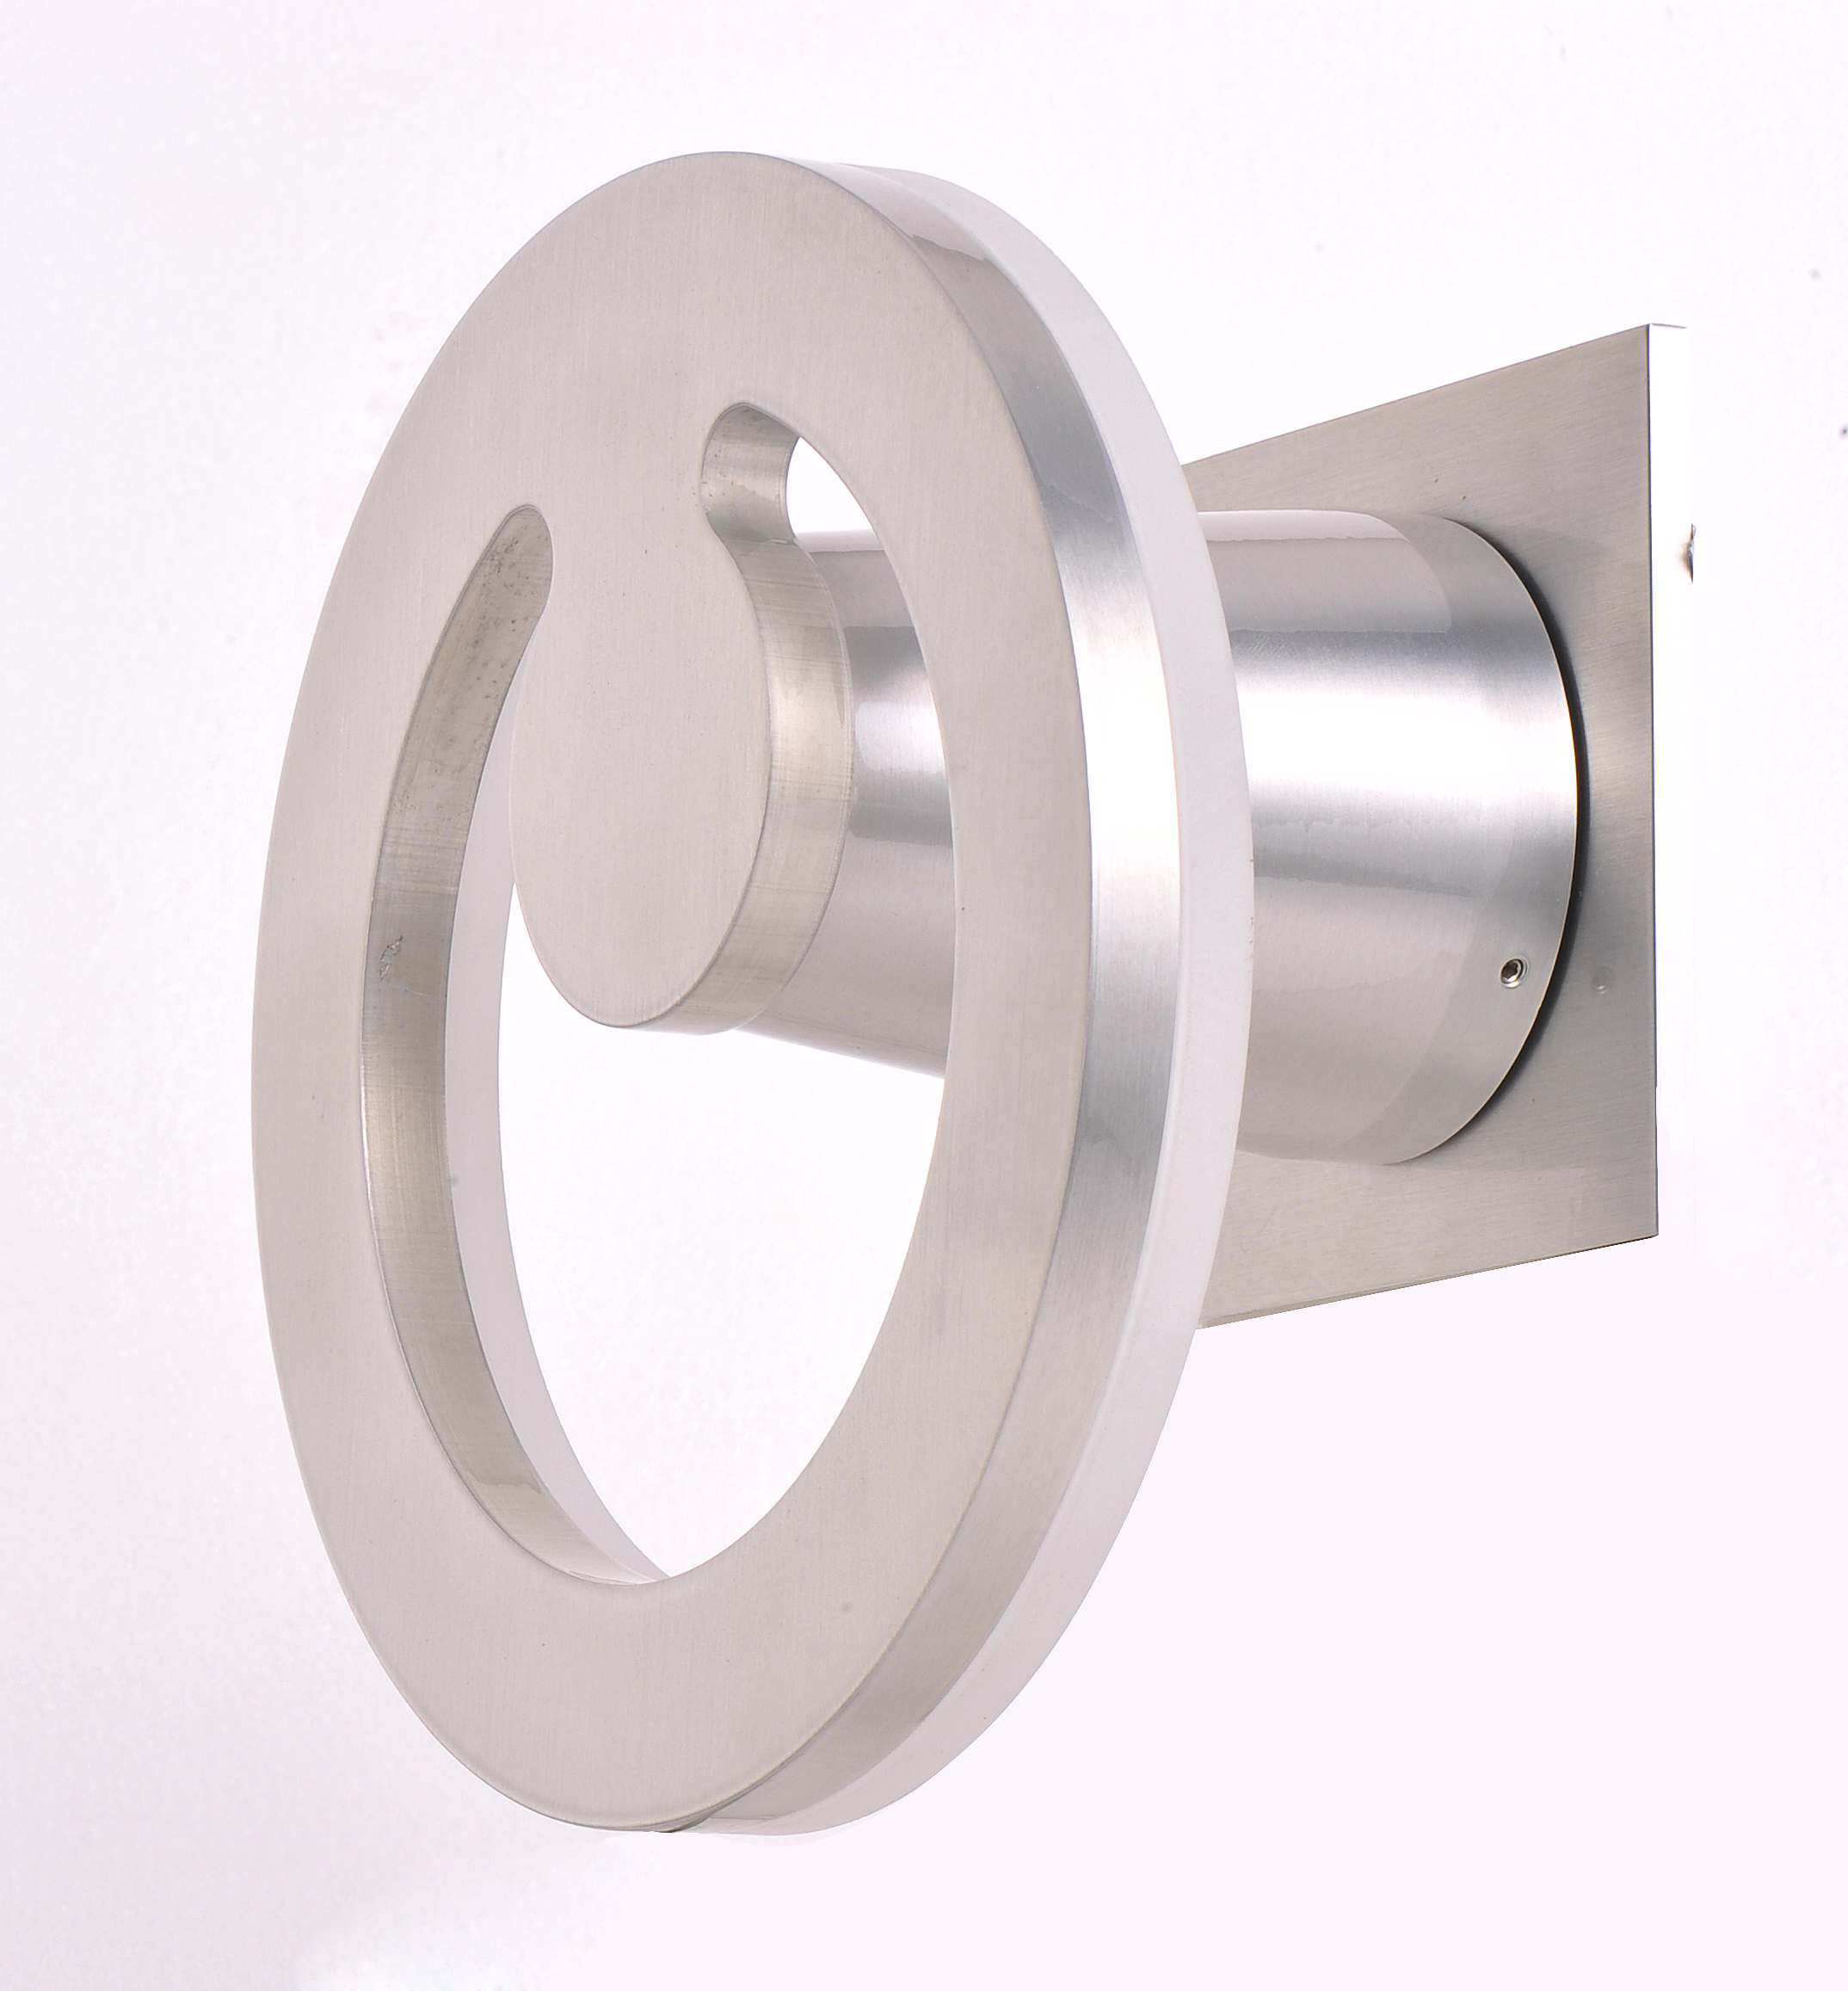 Alumilux LED Outdoor Wall Sconce | Wall | ET2 Online on Wall Sconce Replacement Parts id=80171